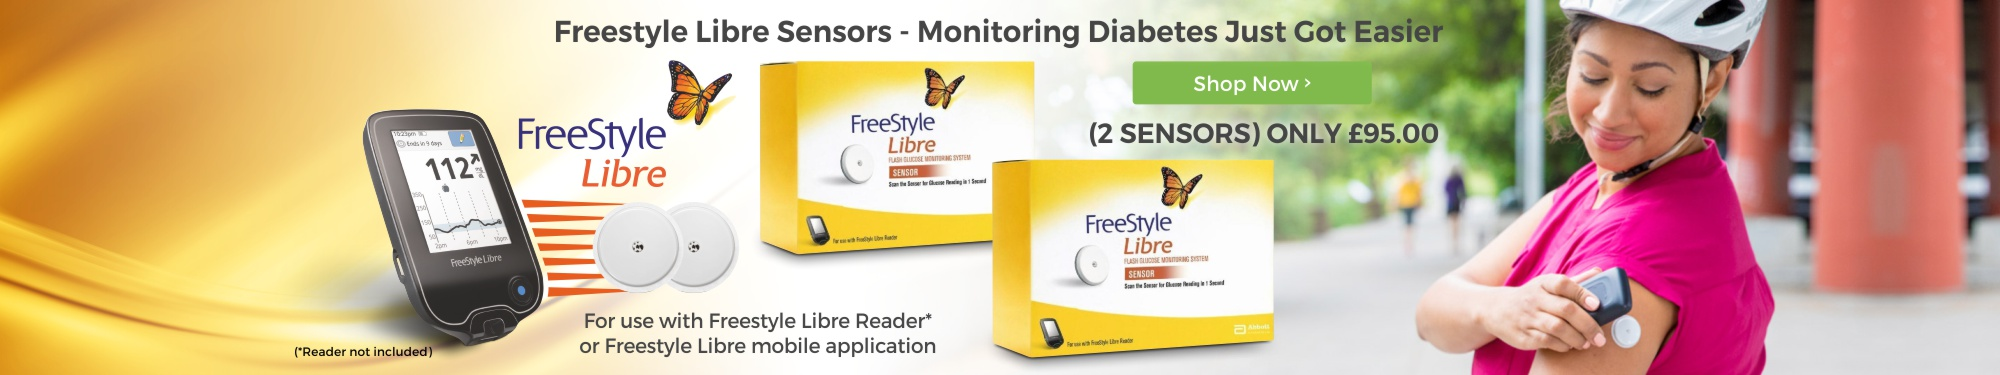 Freestyle Libre Sensors - Monitoring Diabetes Just Got Easier. 2 Sensors only �95.00